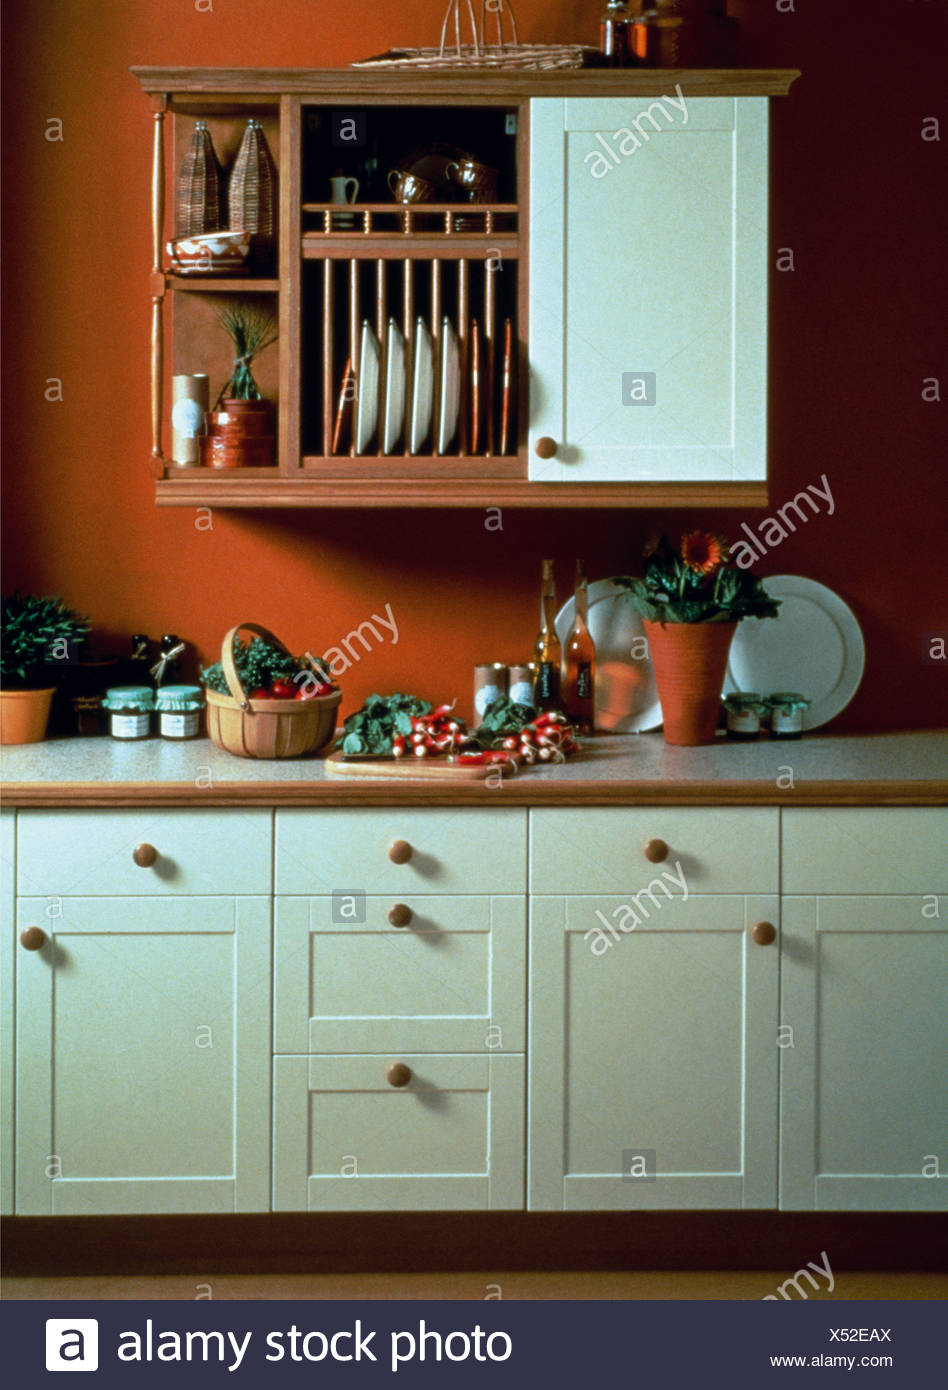 Plate Rack And Wooden Shelves On Wall Unit In Red Kitchen With White Fitted  Cupboards